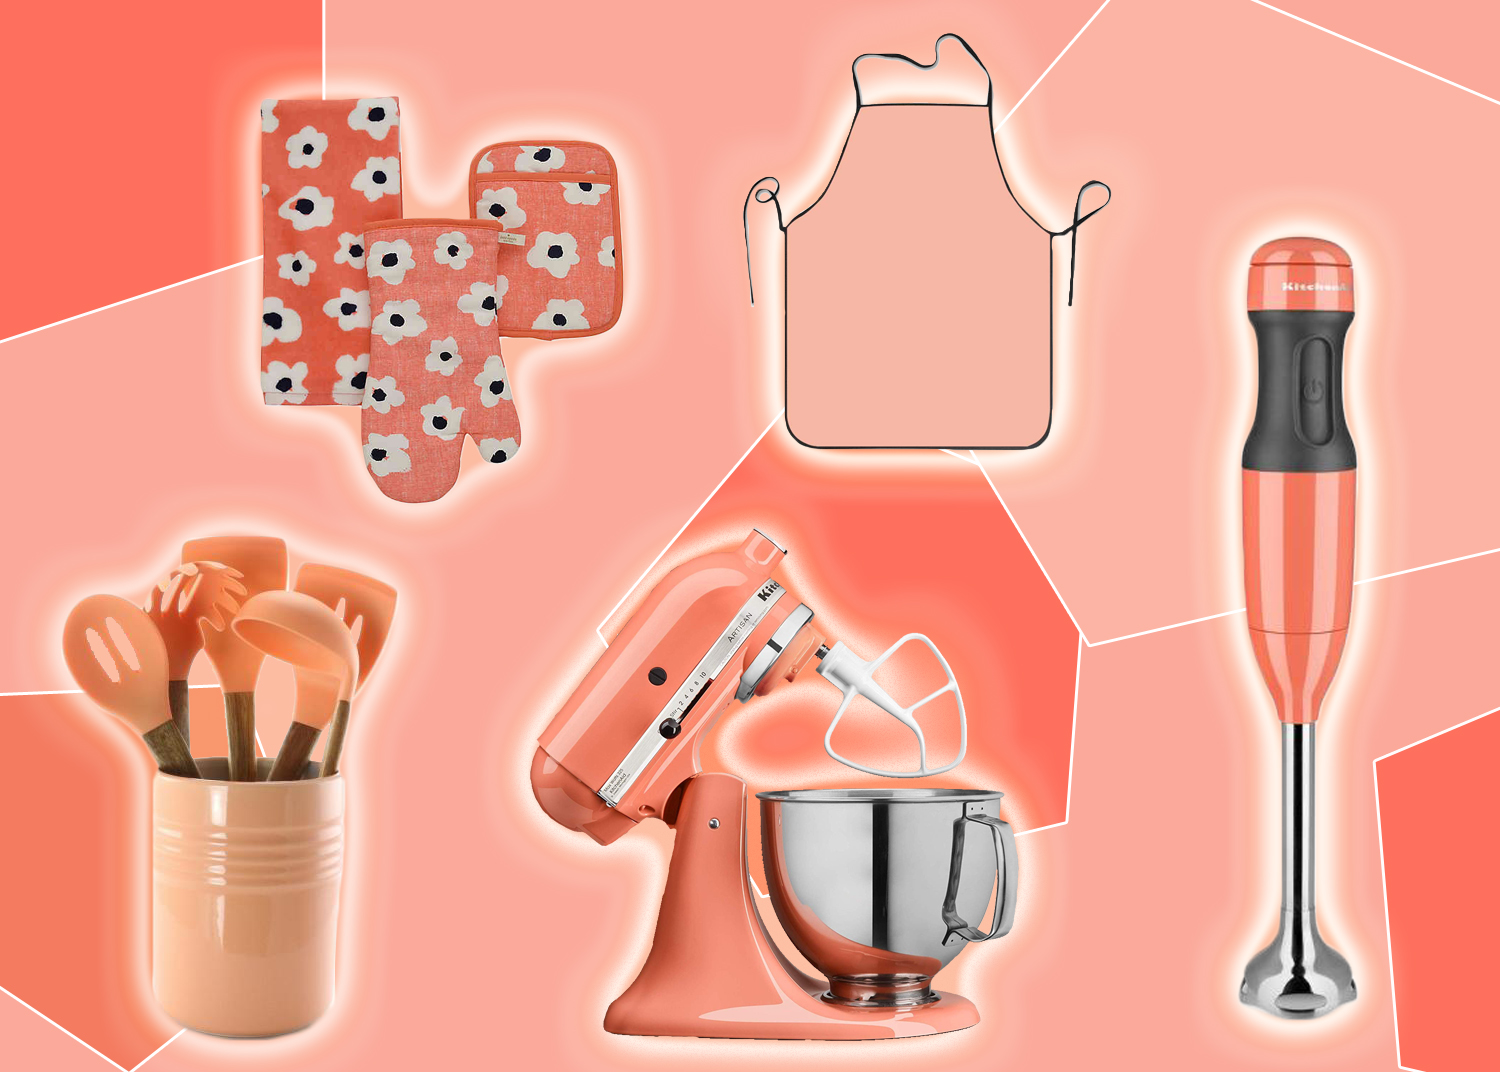 10 Cute Coral Accessories To Brighten Up Your Kitchen - Cityline